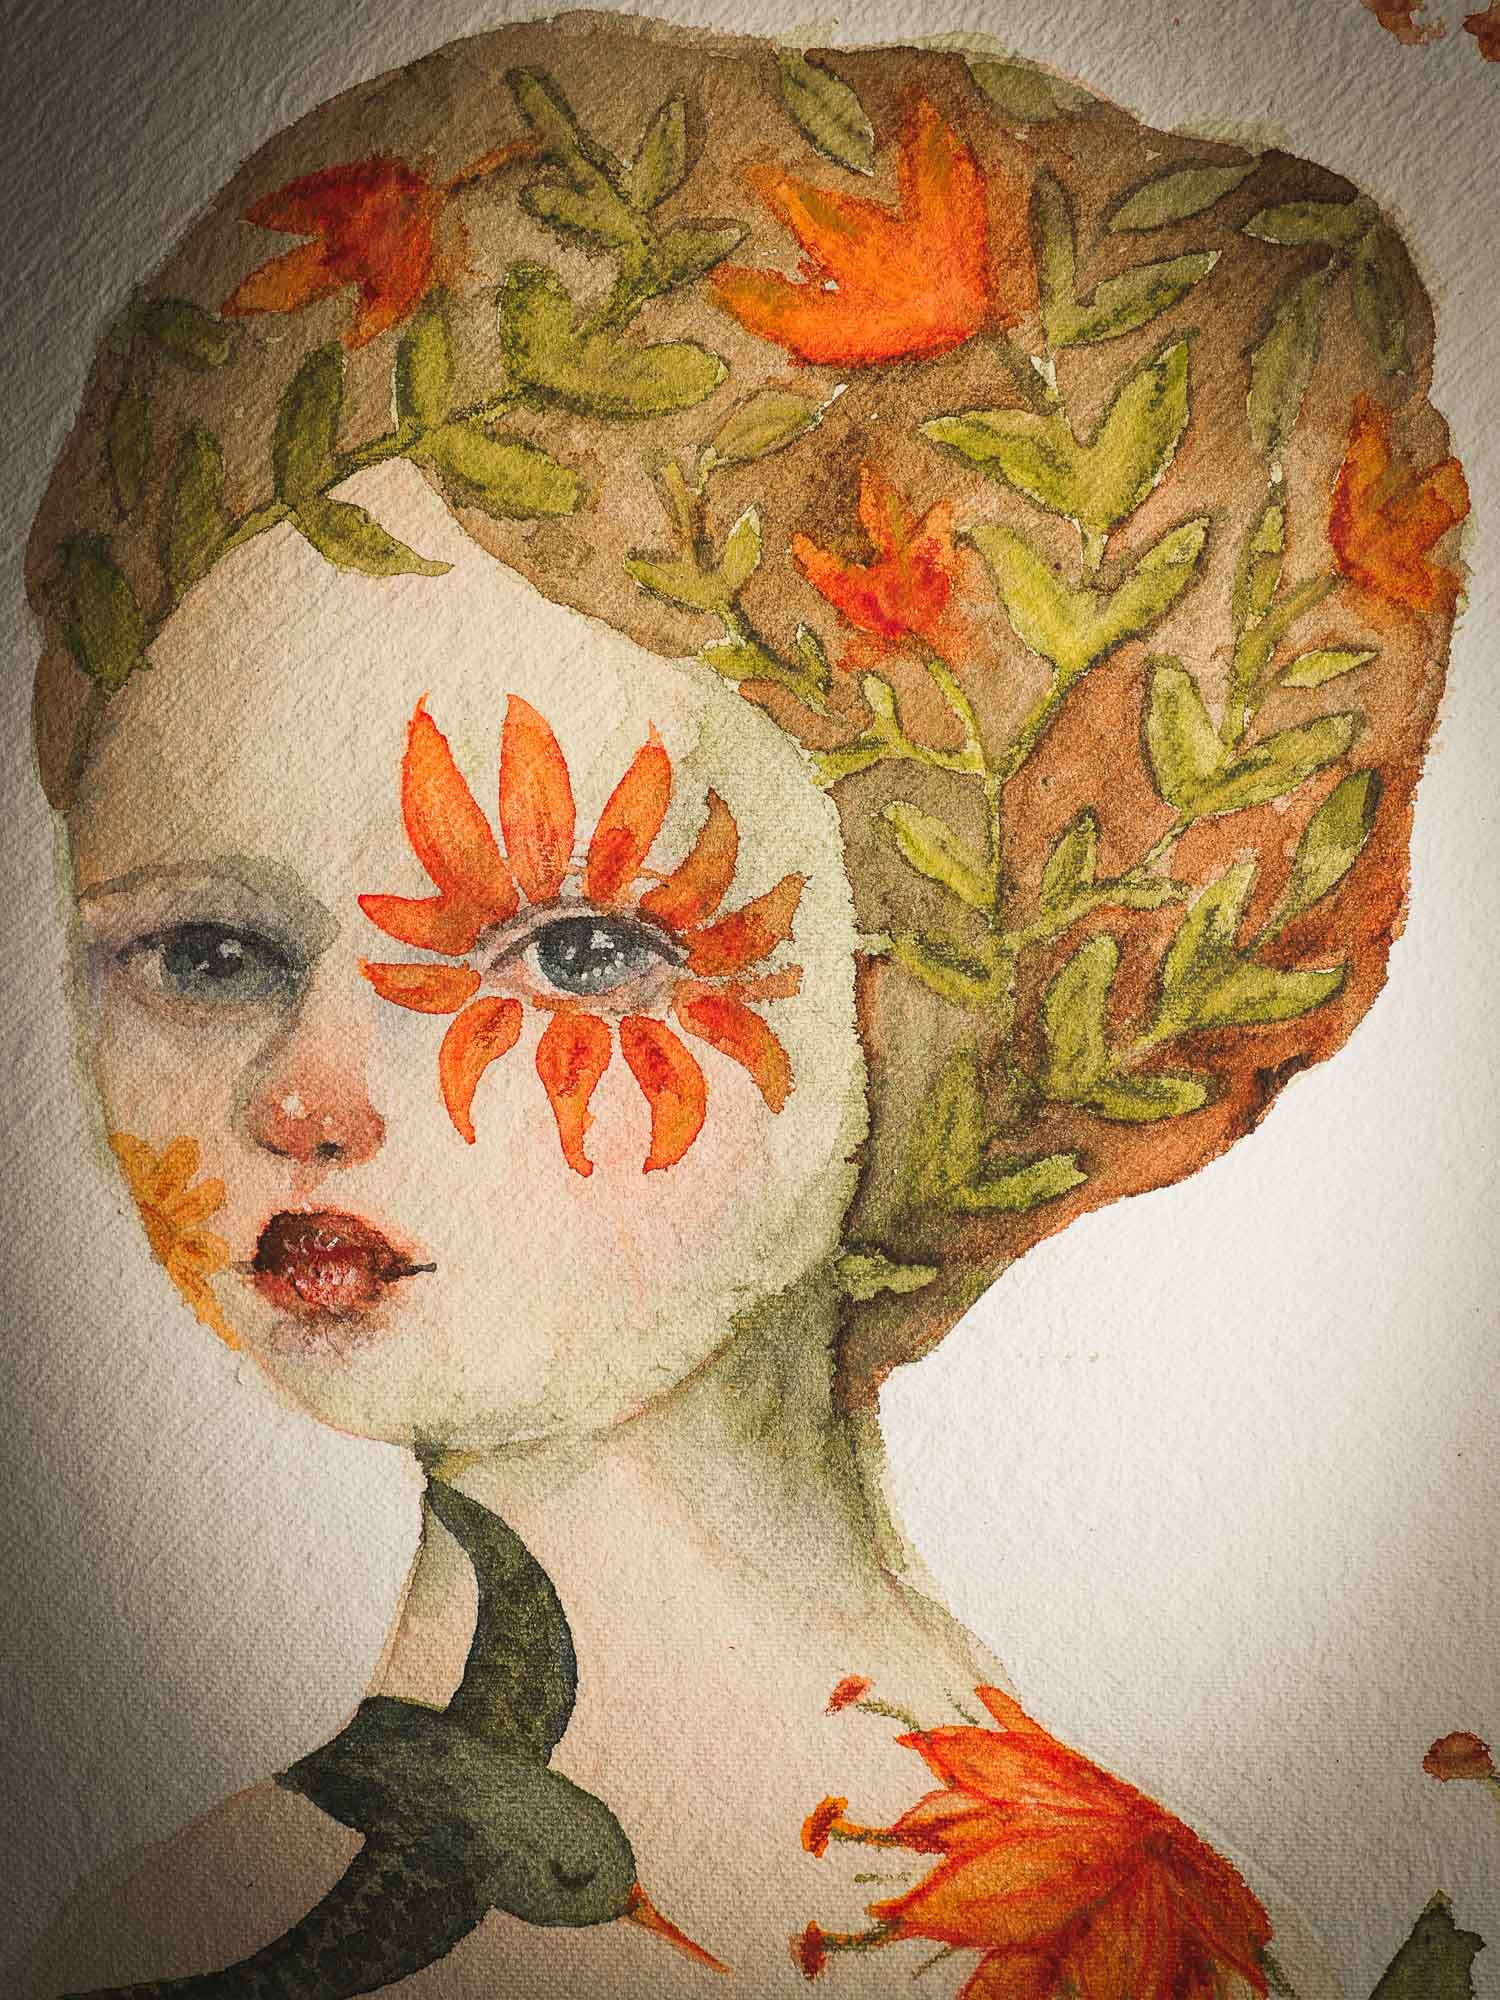 This original Idania Salcido (Danita Art) painting was made on a circular 12 x 12 Inch handmade watercolor paper, depicting a beautiful woman representing mother nature, with a wreath around it, orange flowers in her hair, a flower around her eye and a flying green bird at her shoulder.